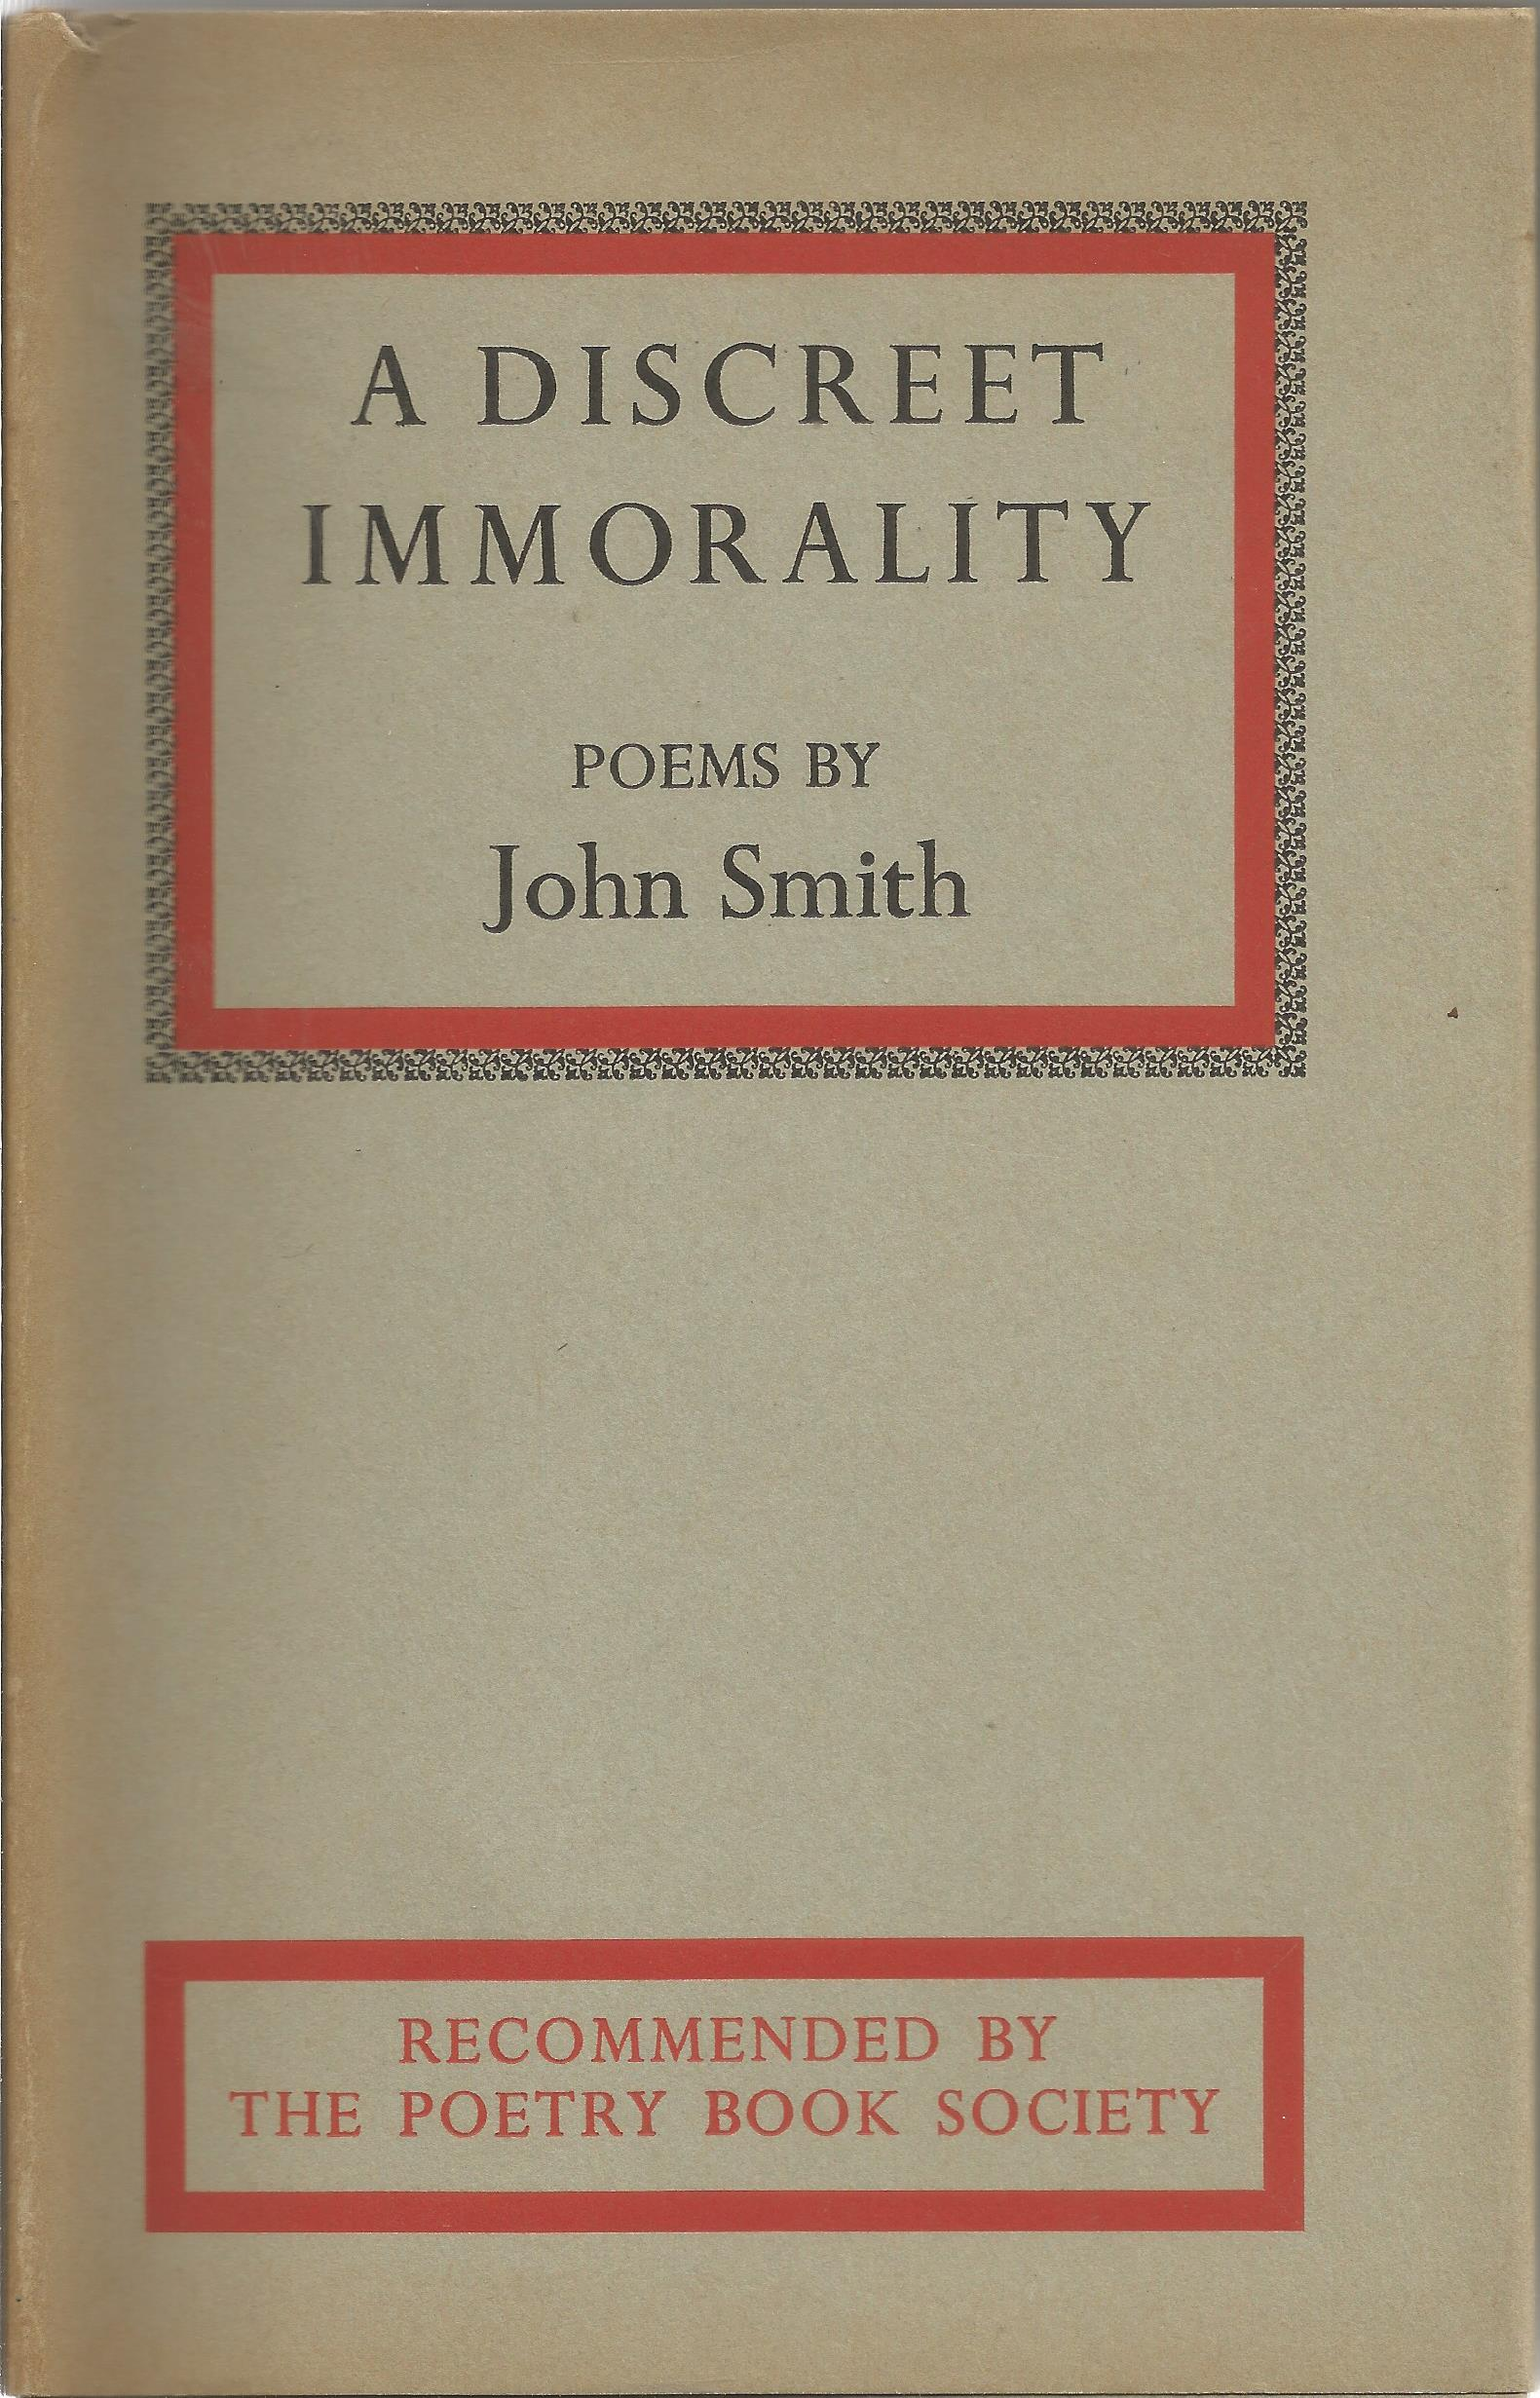 John Smith Hardback Book A Discreet Immortality 1965 signed by the Author on the First Page some